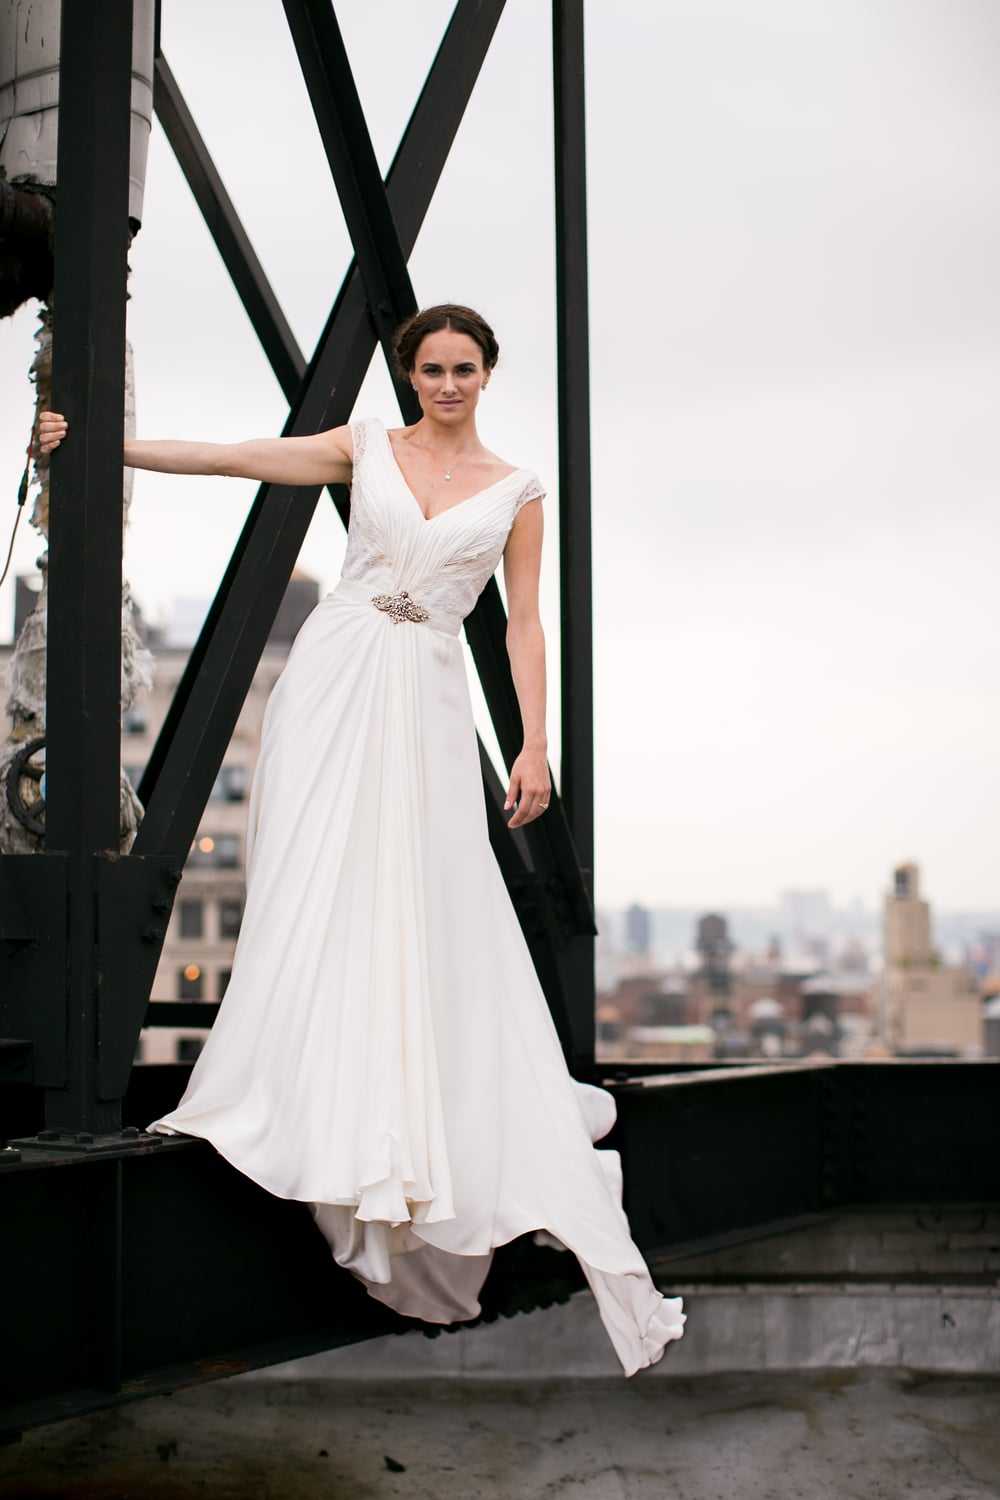 bride wedding dress nyc view photography 0041